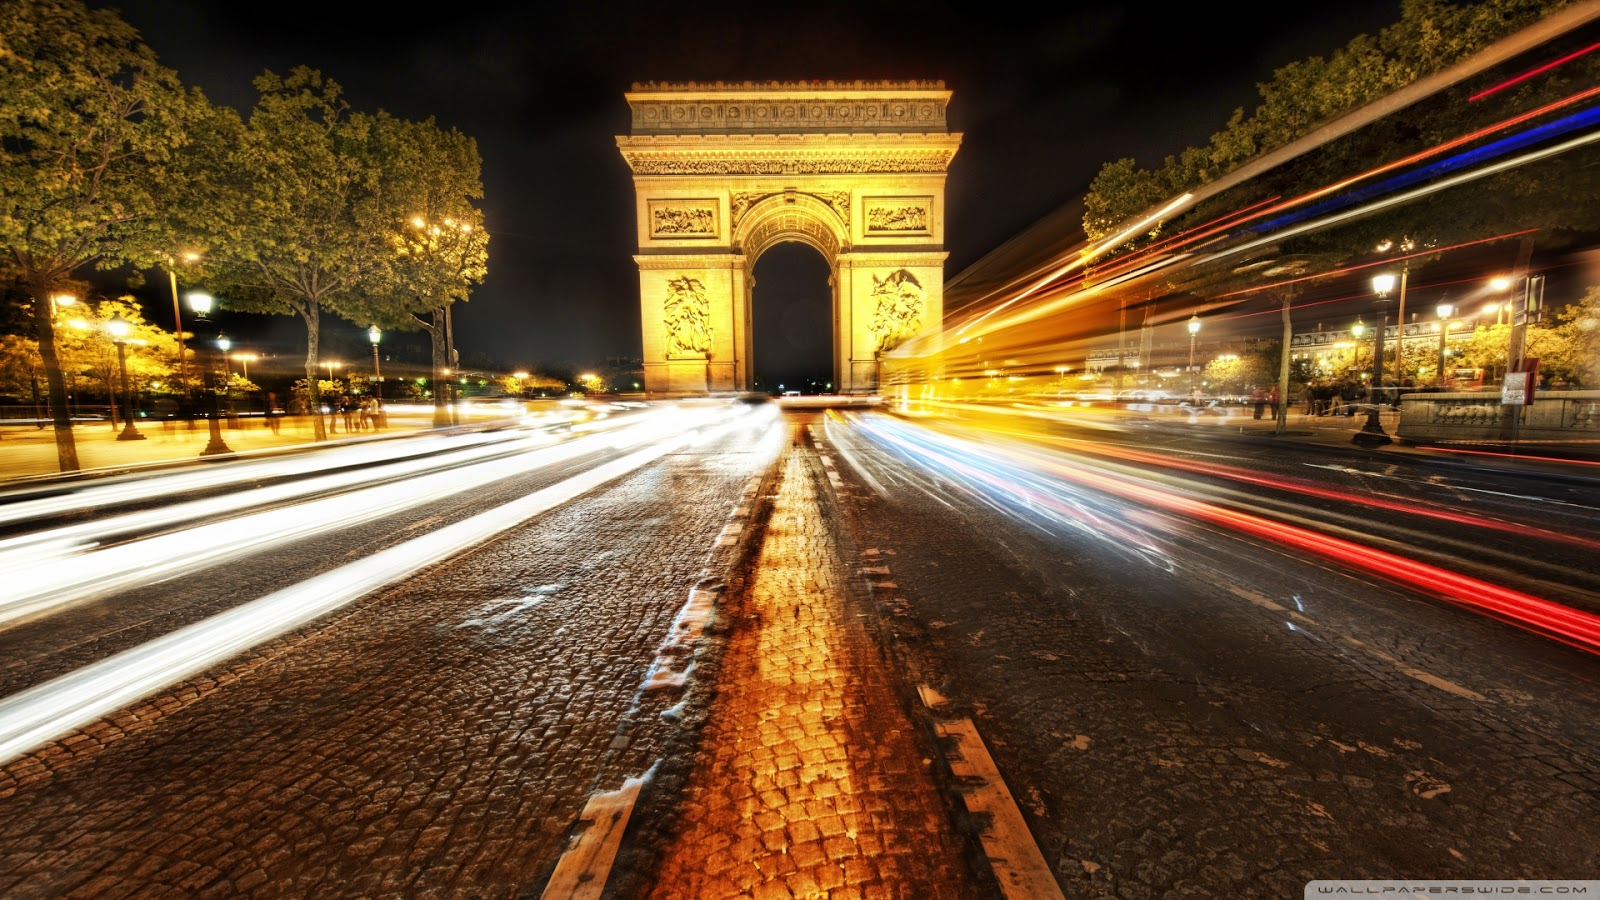 http://2.bp.blogspot.com/-ds07UHmD5jk/ULaqSk4Hy4I/AAAAAAAAC9o/E5n8T88eeO8/s1600/arc_de_triomphe_at_night-wallpaper-1920x1080.jpg